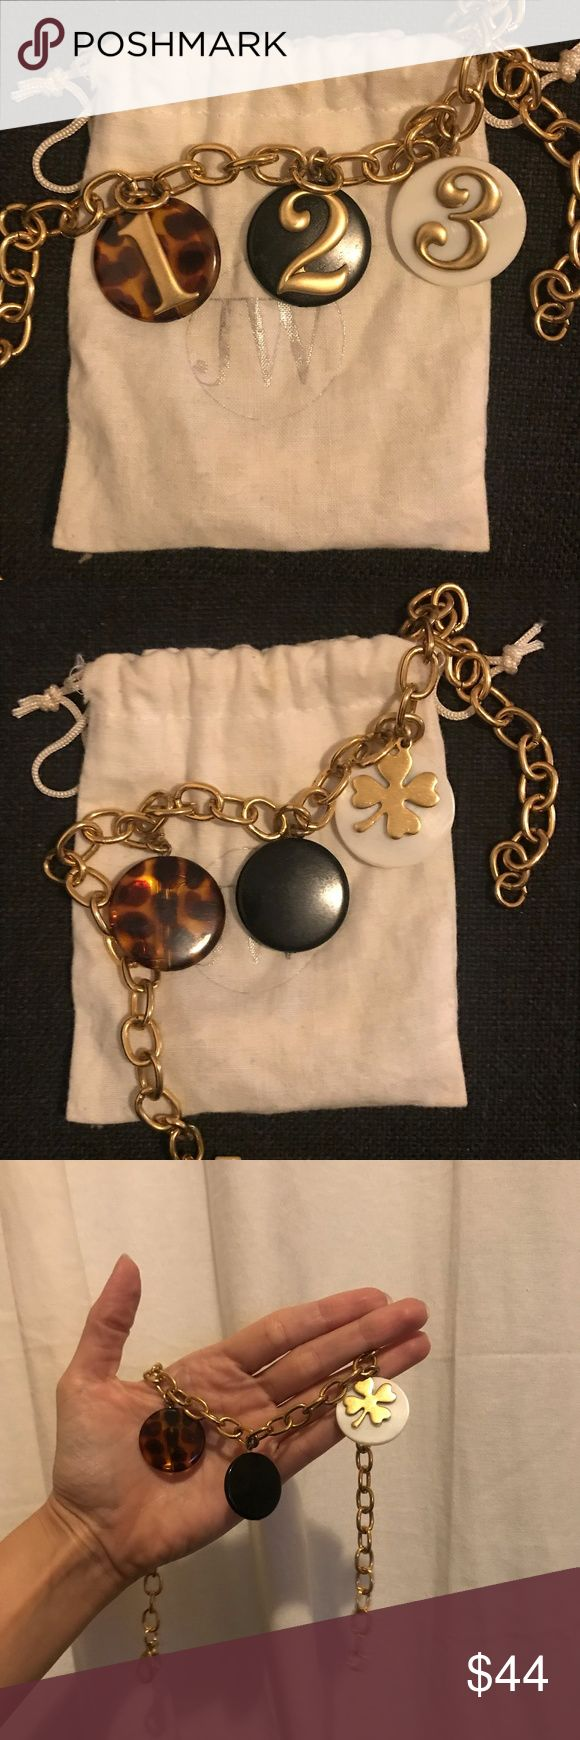 john wind 1-2-3 lucky clover necklace john wind 1-2-3 lucky clover necklace. beautiful gold chain with different colored charms —black, white, tortoise. #3 has a lucky clover on the back. you can flip and wear the charms any way you want! john wind Jewelry Necklaces